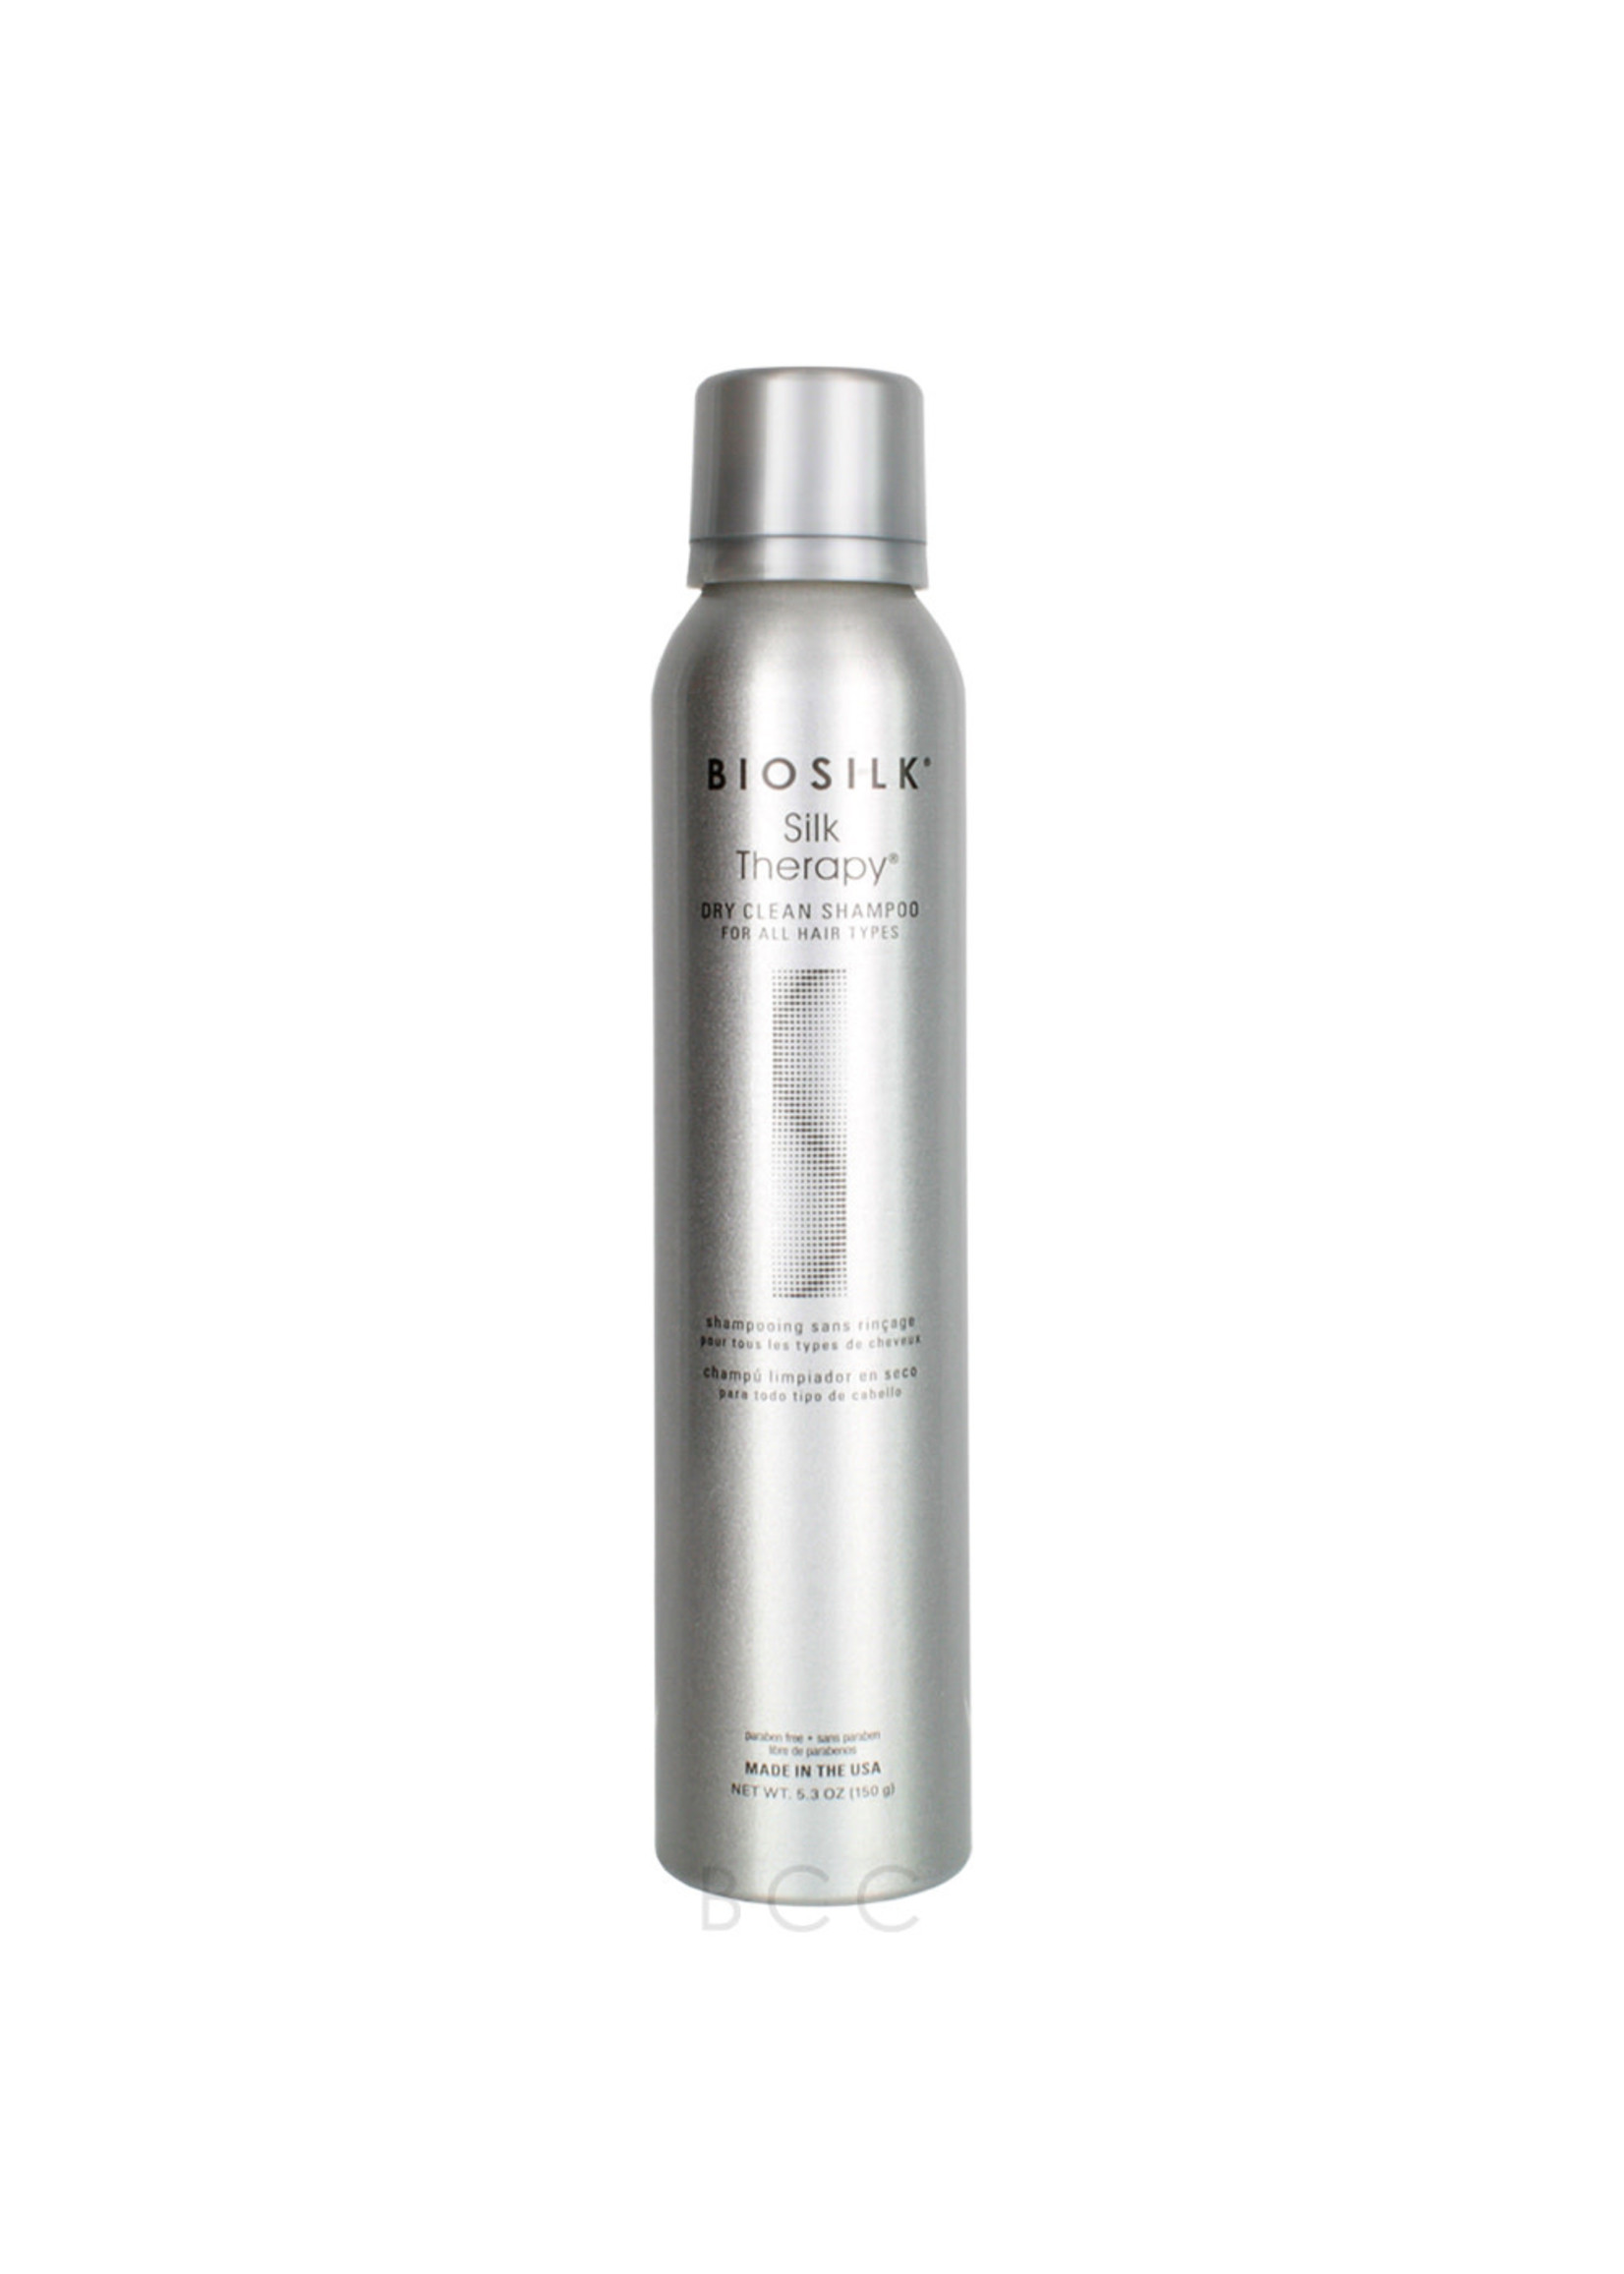 Biosilk Silk Therapy Dry Clean Shampoo